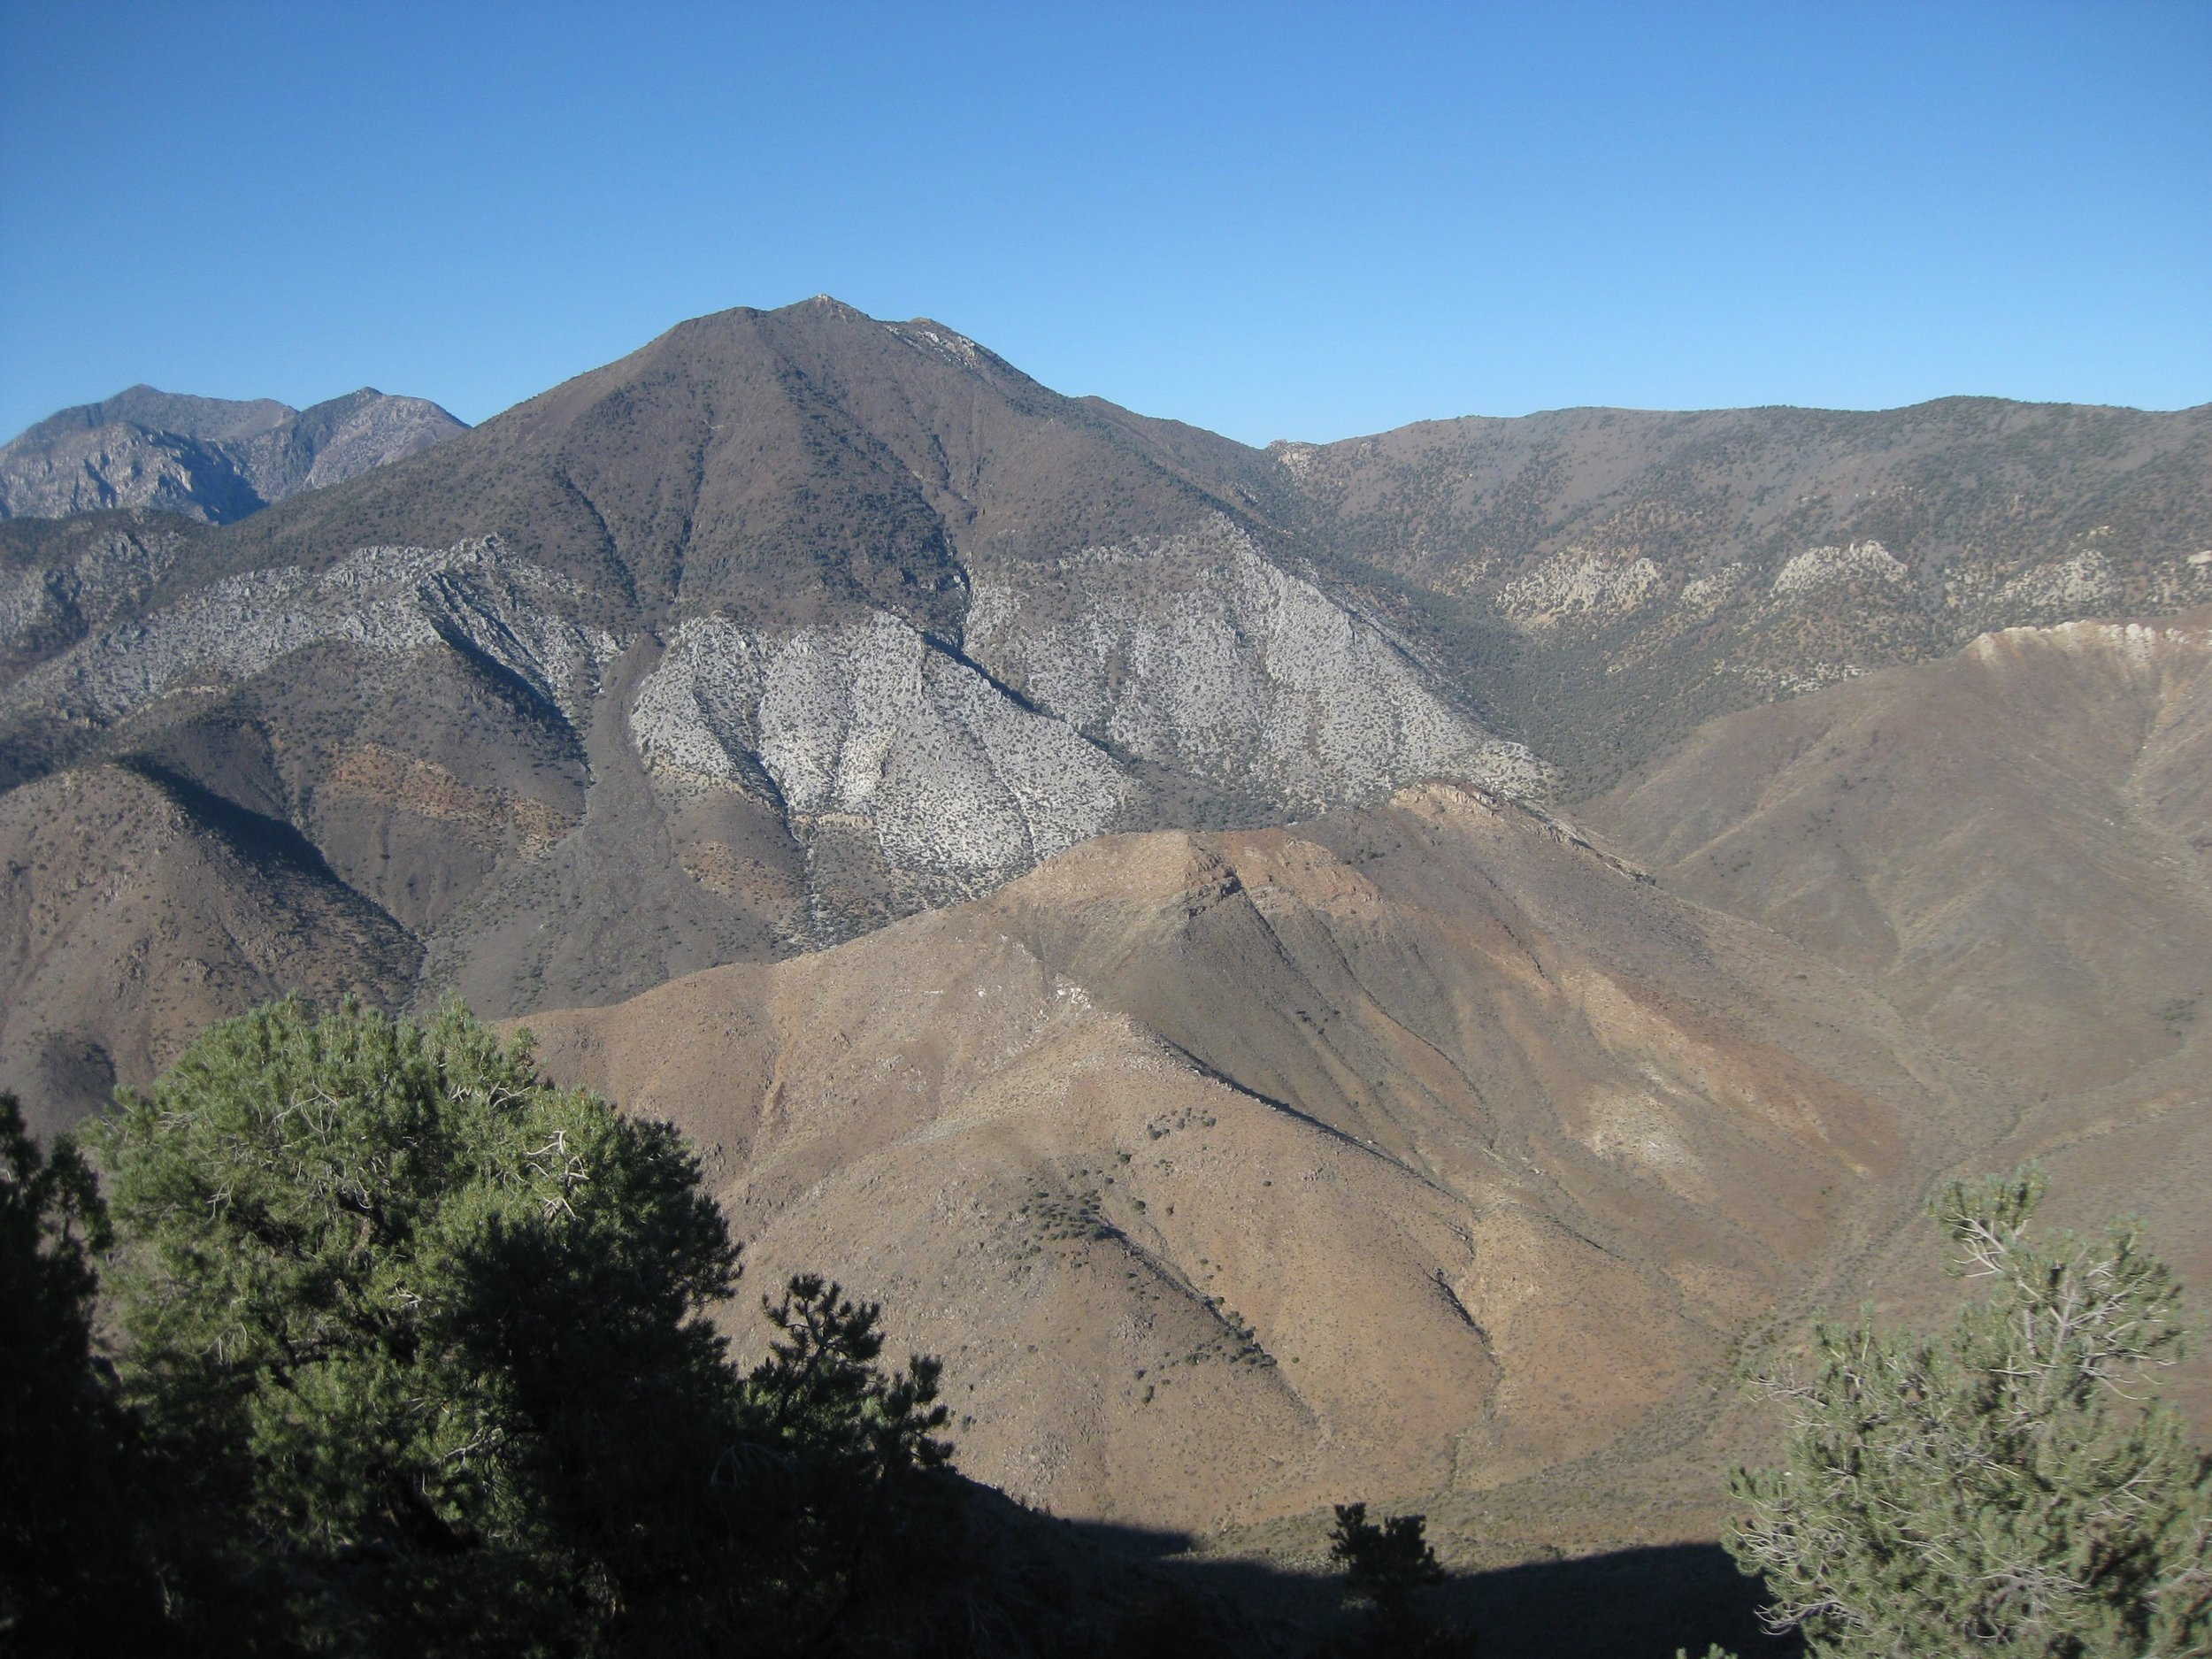 The Tonian Beck Spring Dolomite in the Panamint Range